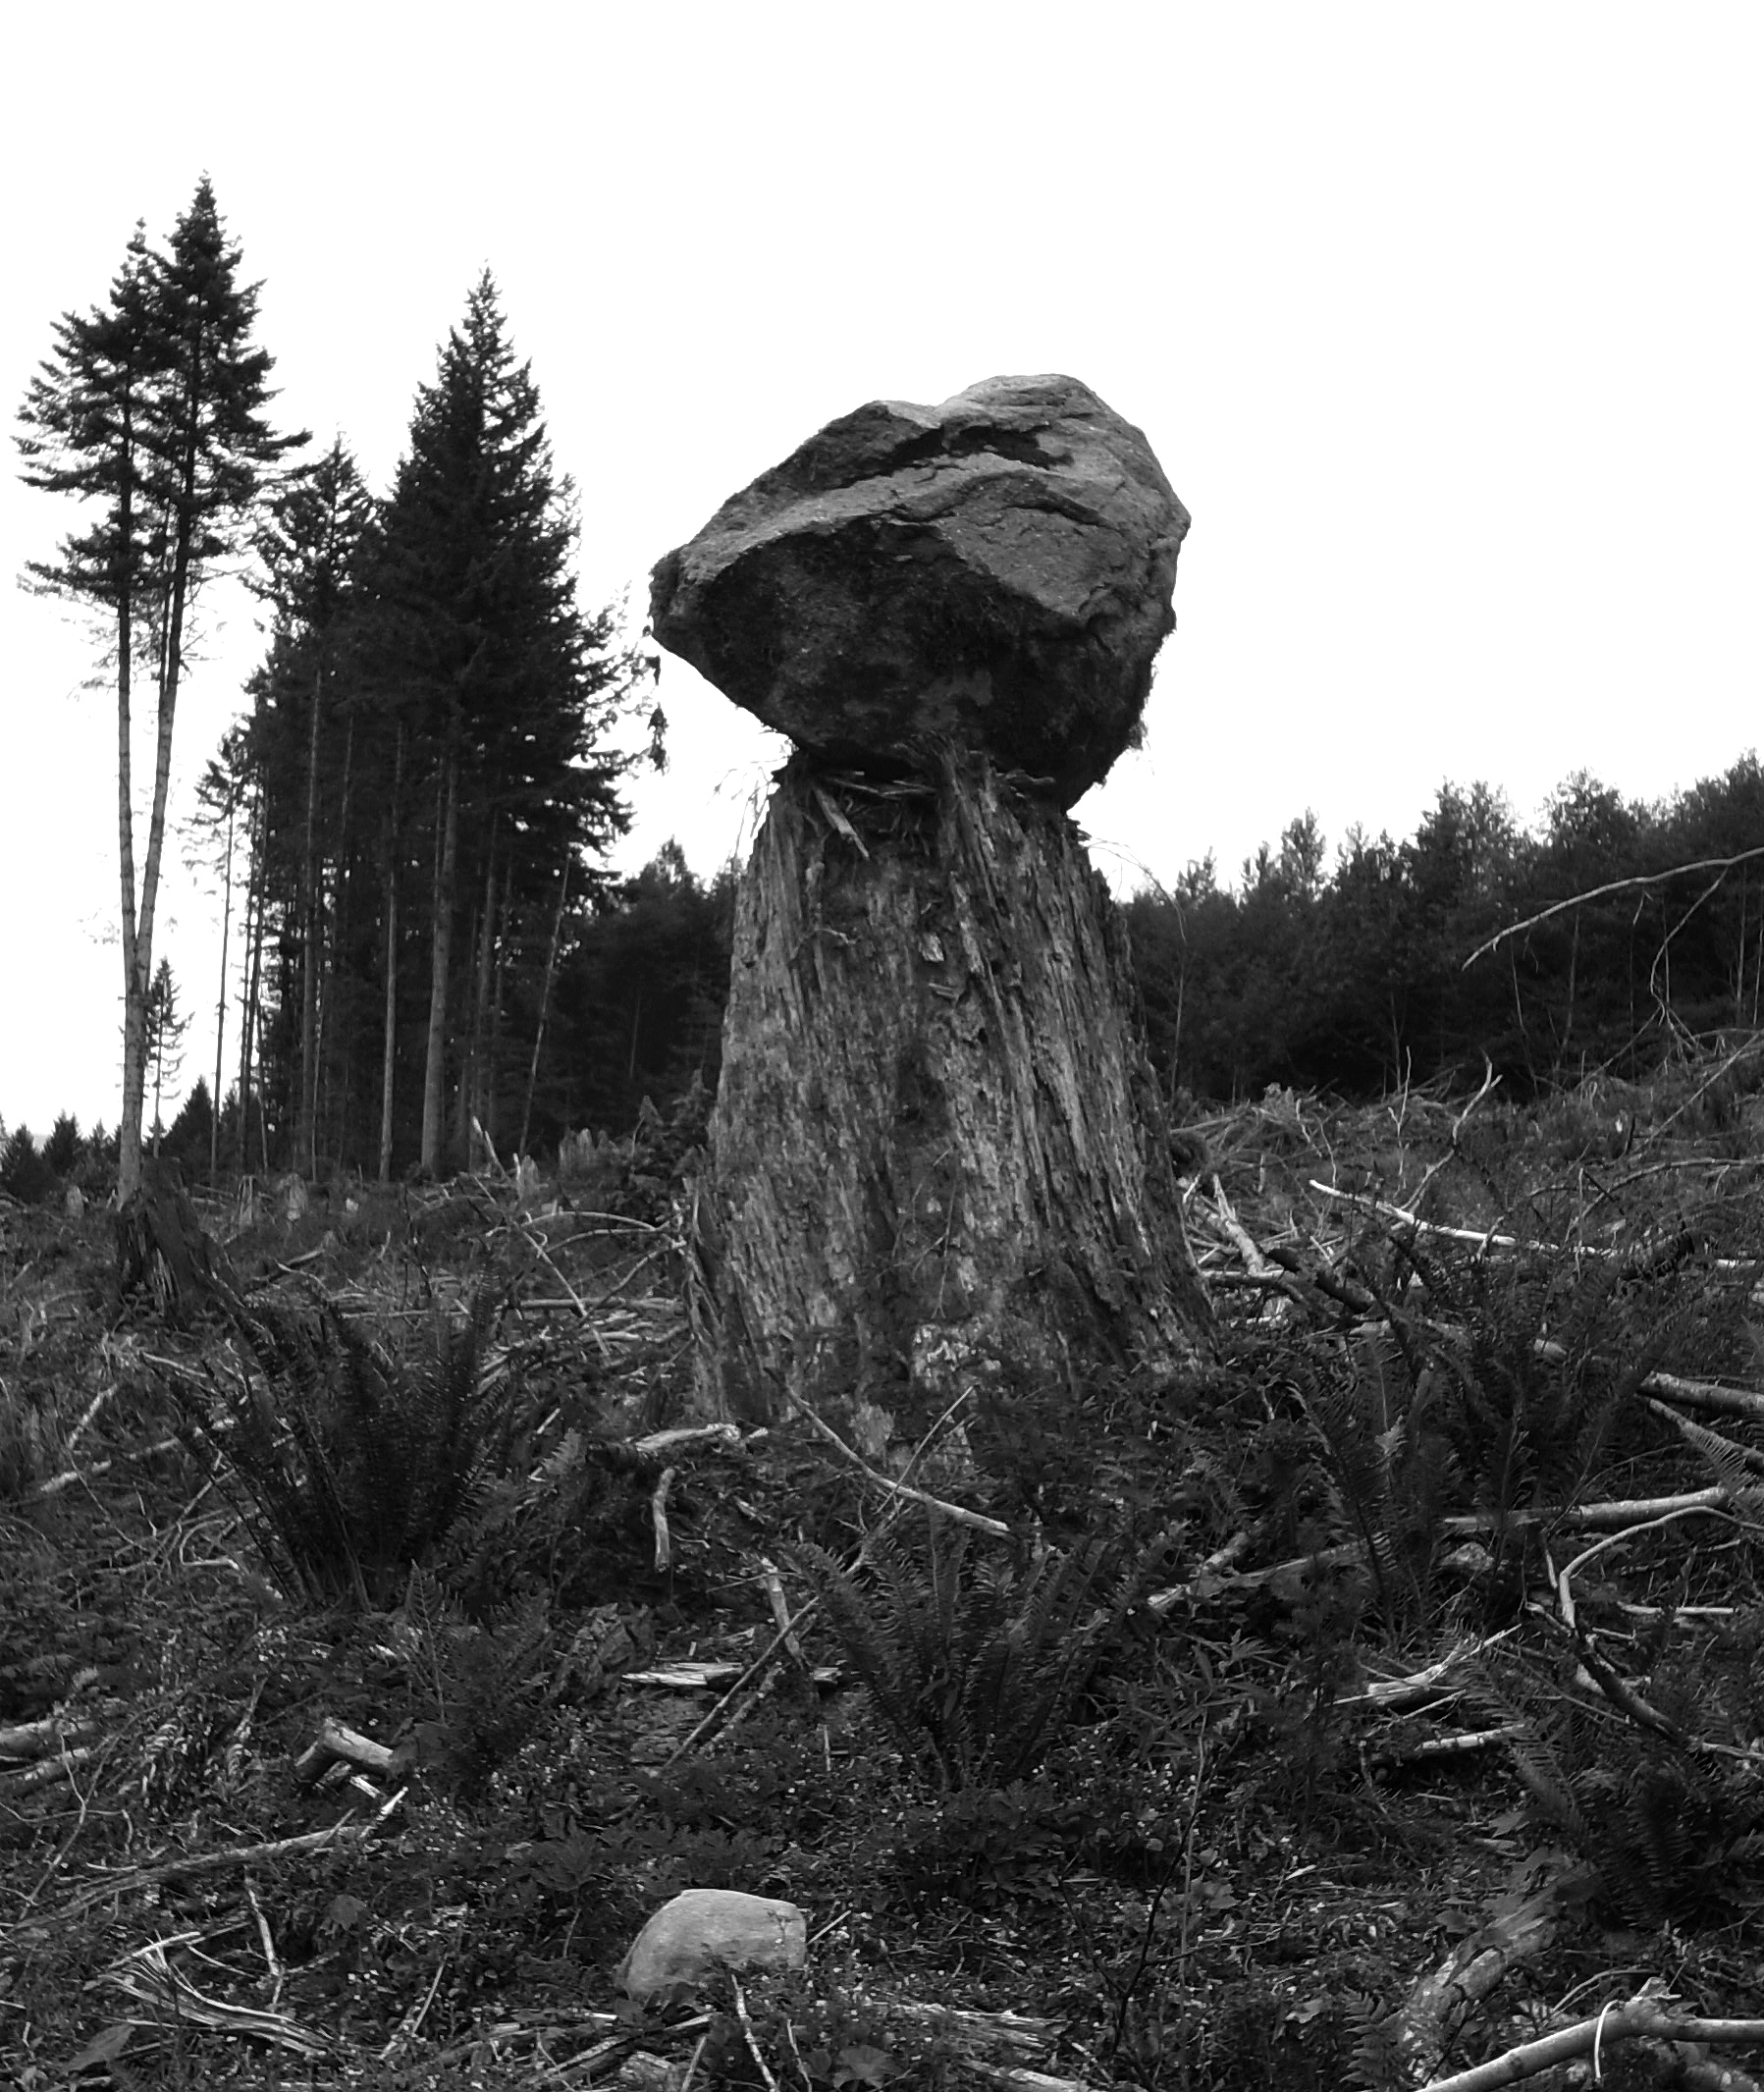 A tree stump with a large rock over it in a clear cut area